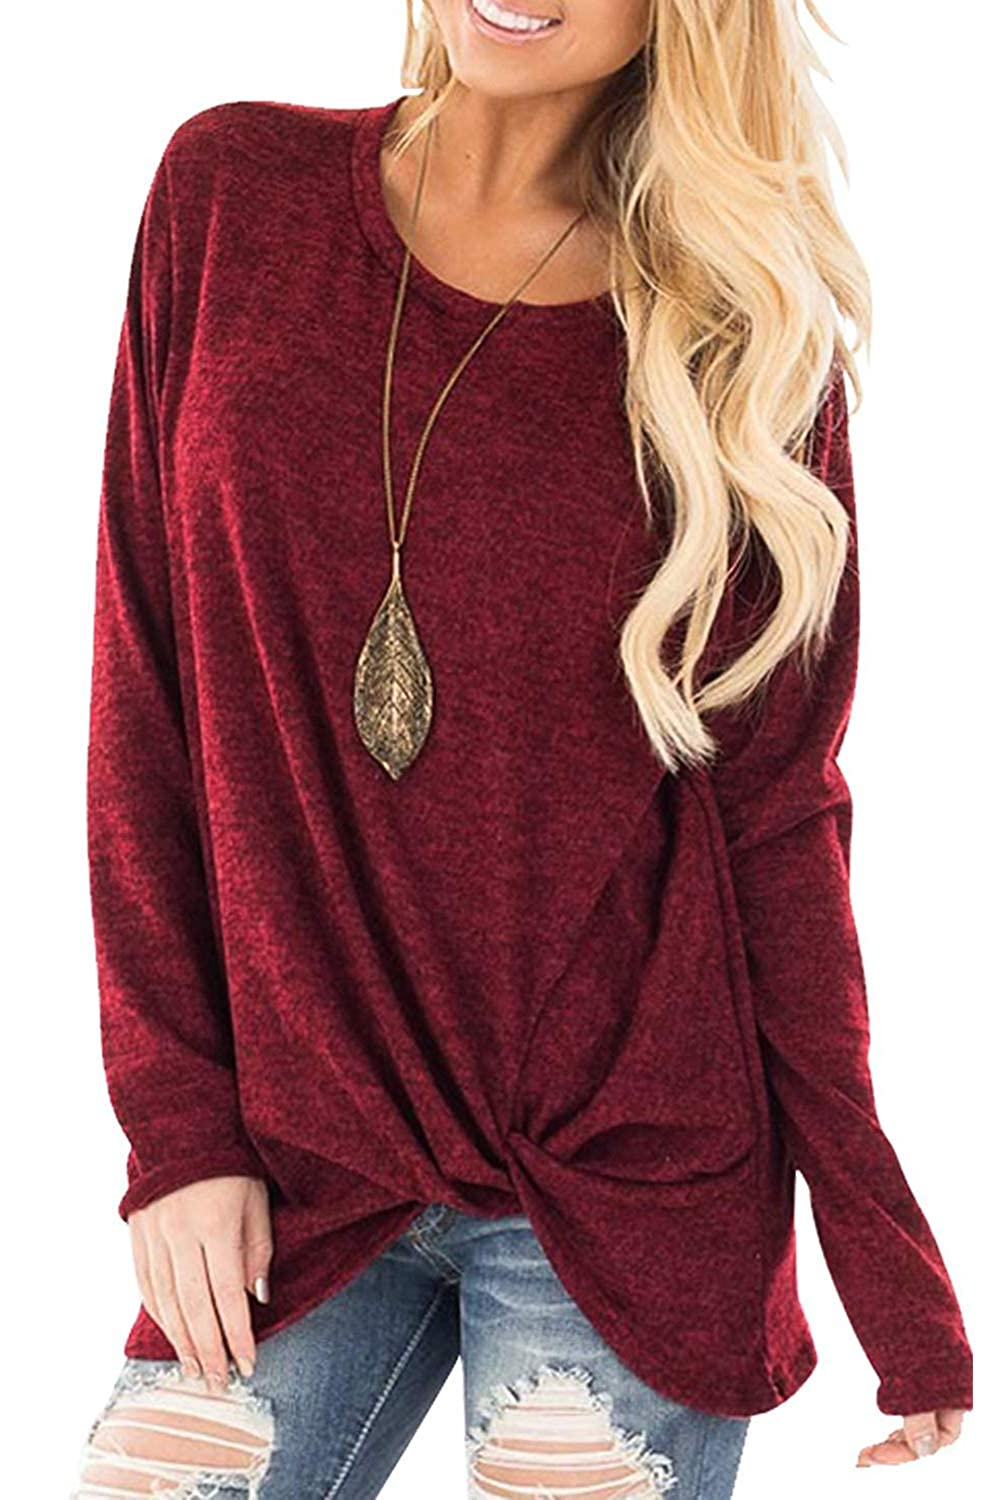 Mupoduvos Womens Tunic Tops Autumn Casual Long Sleeve Knotted T Shirt Top Tee